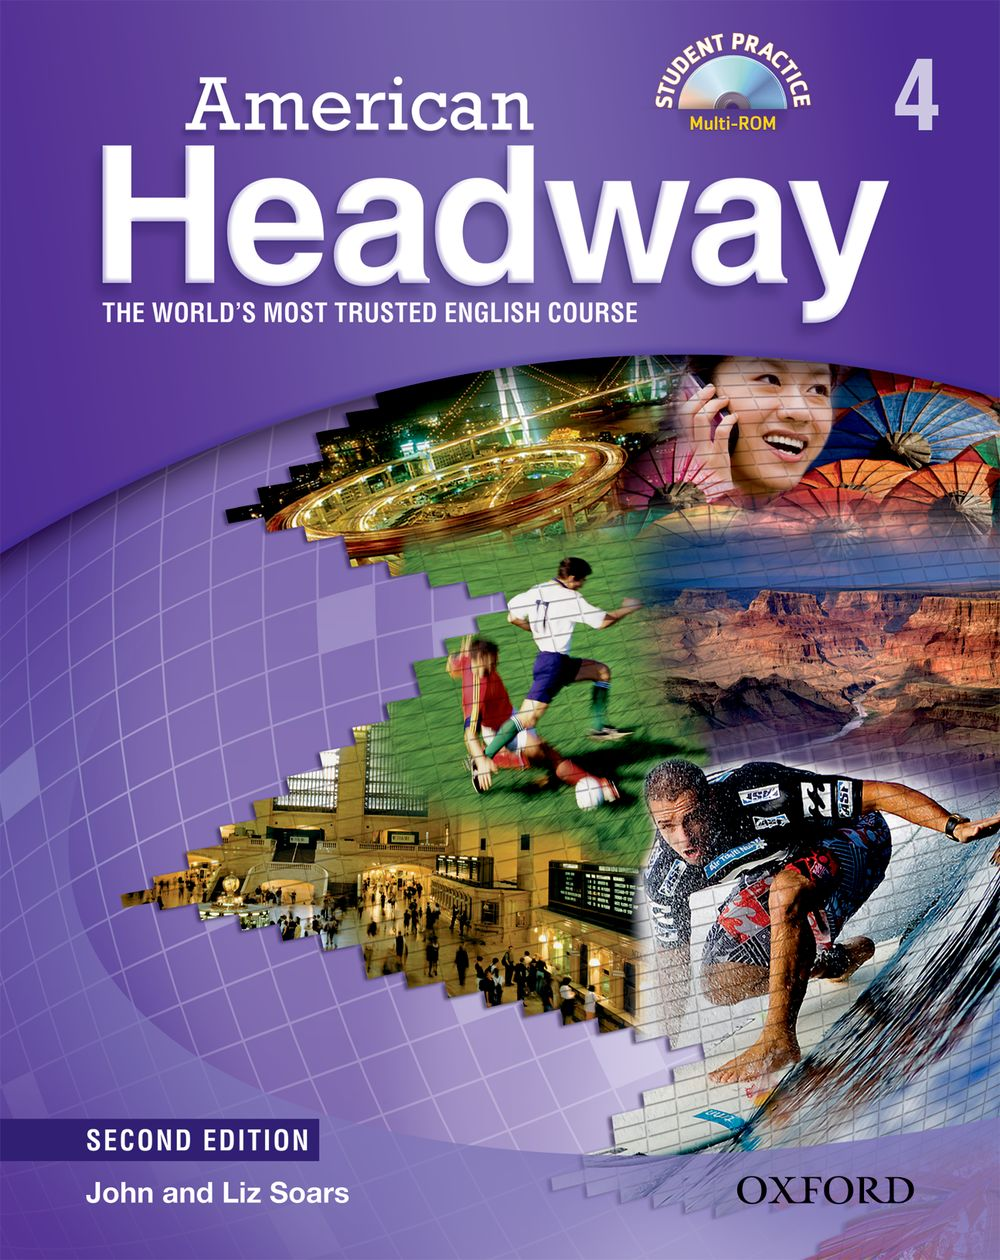 American Headway: Student Book with Student Practice MultiROM Level 4